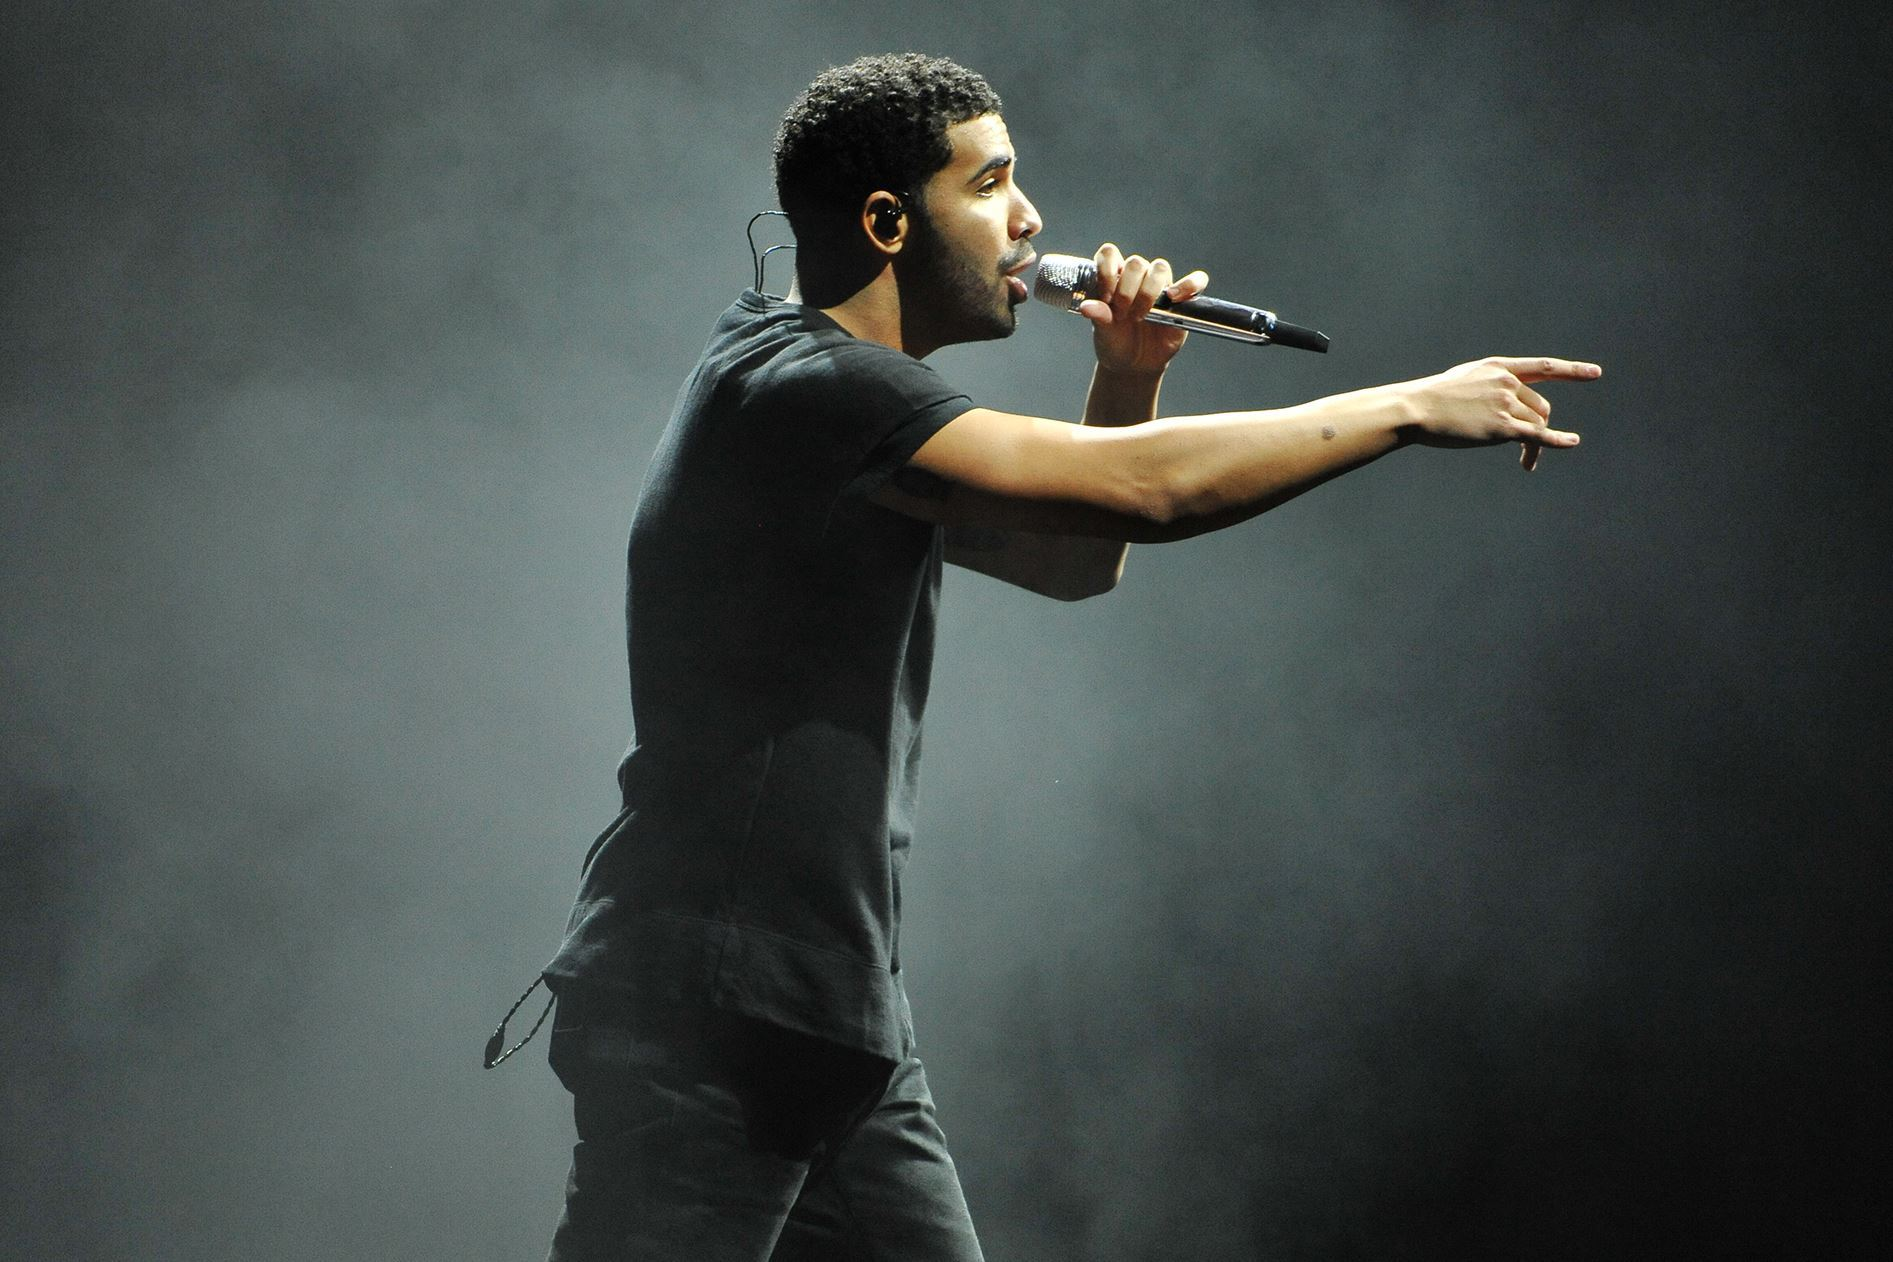 drake wallpapers images photos pictures backgrounds